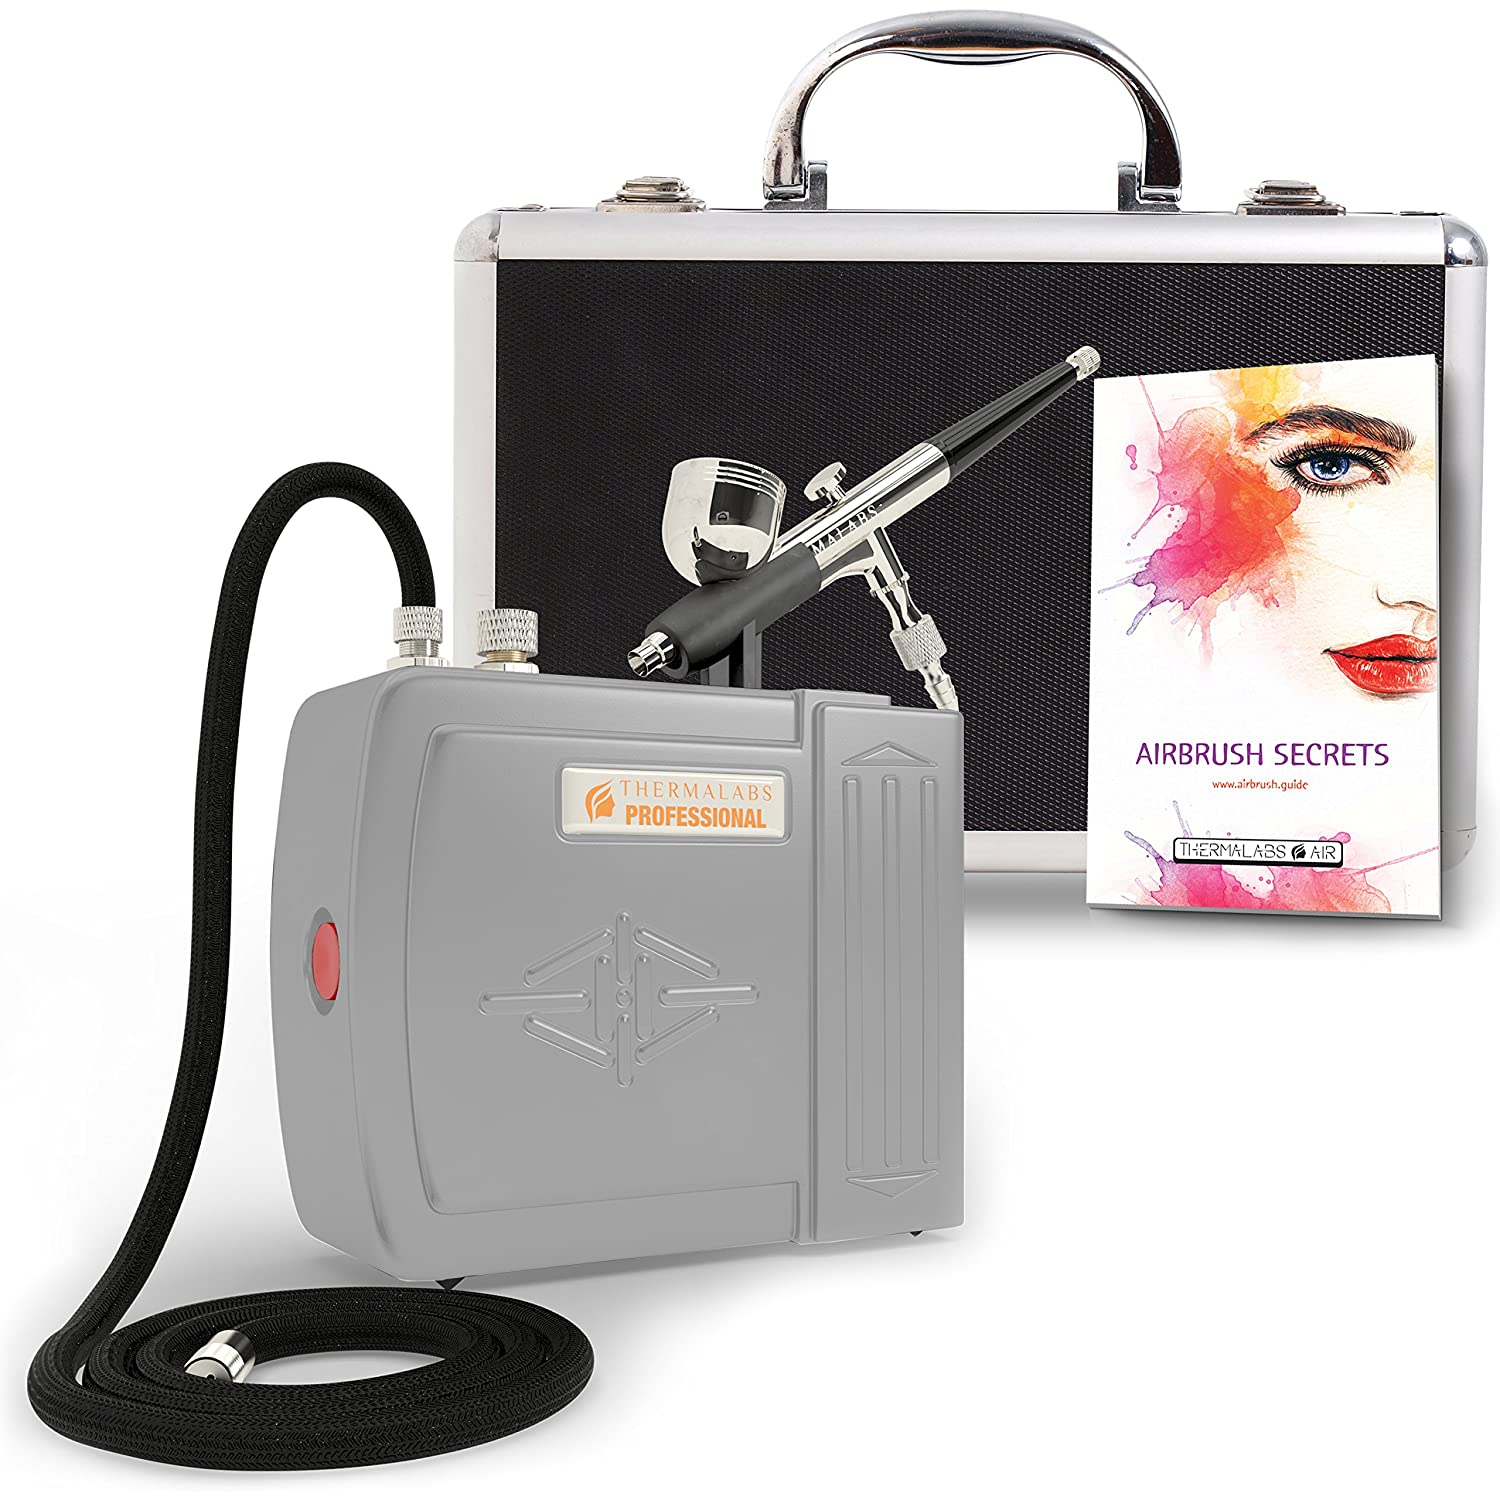 The Complete Airbrush Makeup, Cosmetic and Tattoo Professional Spray Gun Mini Compressor Kit for Multi Purpose Air Brushing: Make up, Body Paint, Temporary Tattoos, Nail Art Paints Machine and more Thermalabs Thermalabs-Inagua-Art